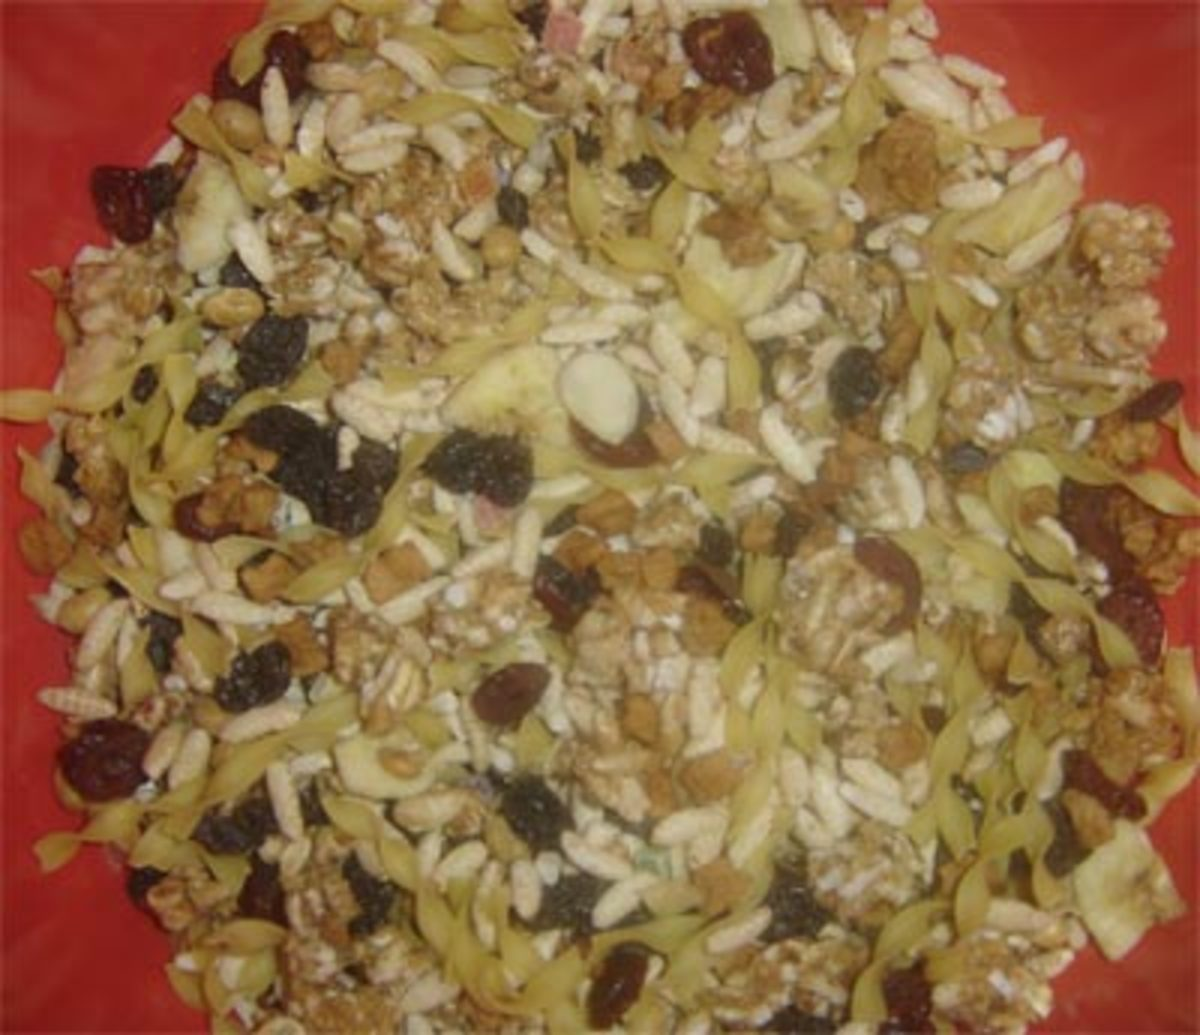 I feed this grain mix to my rats occasionally.